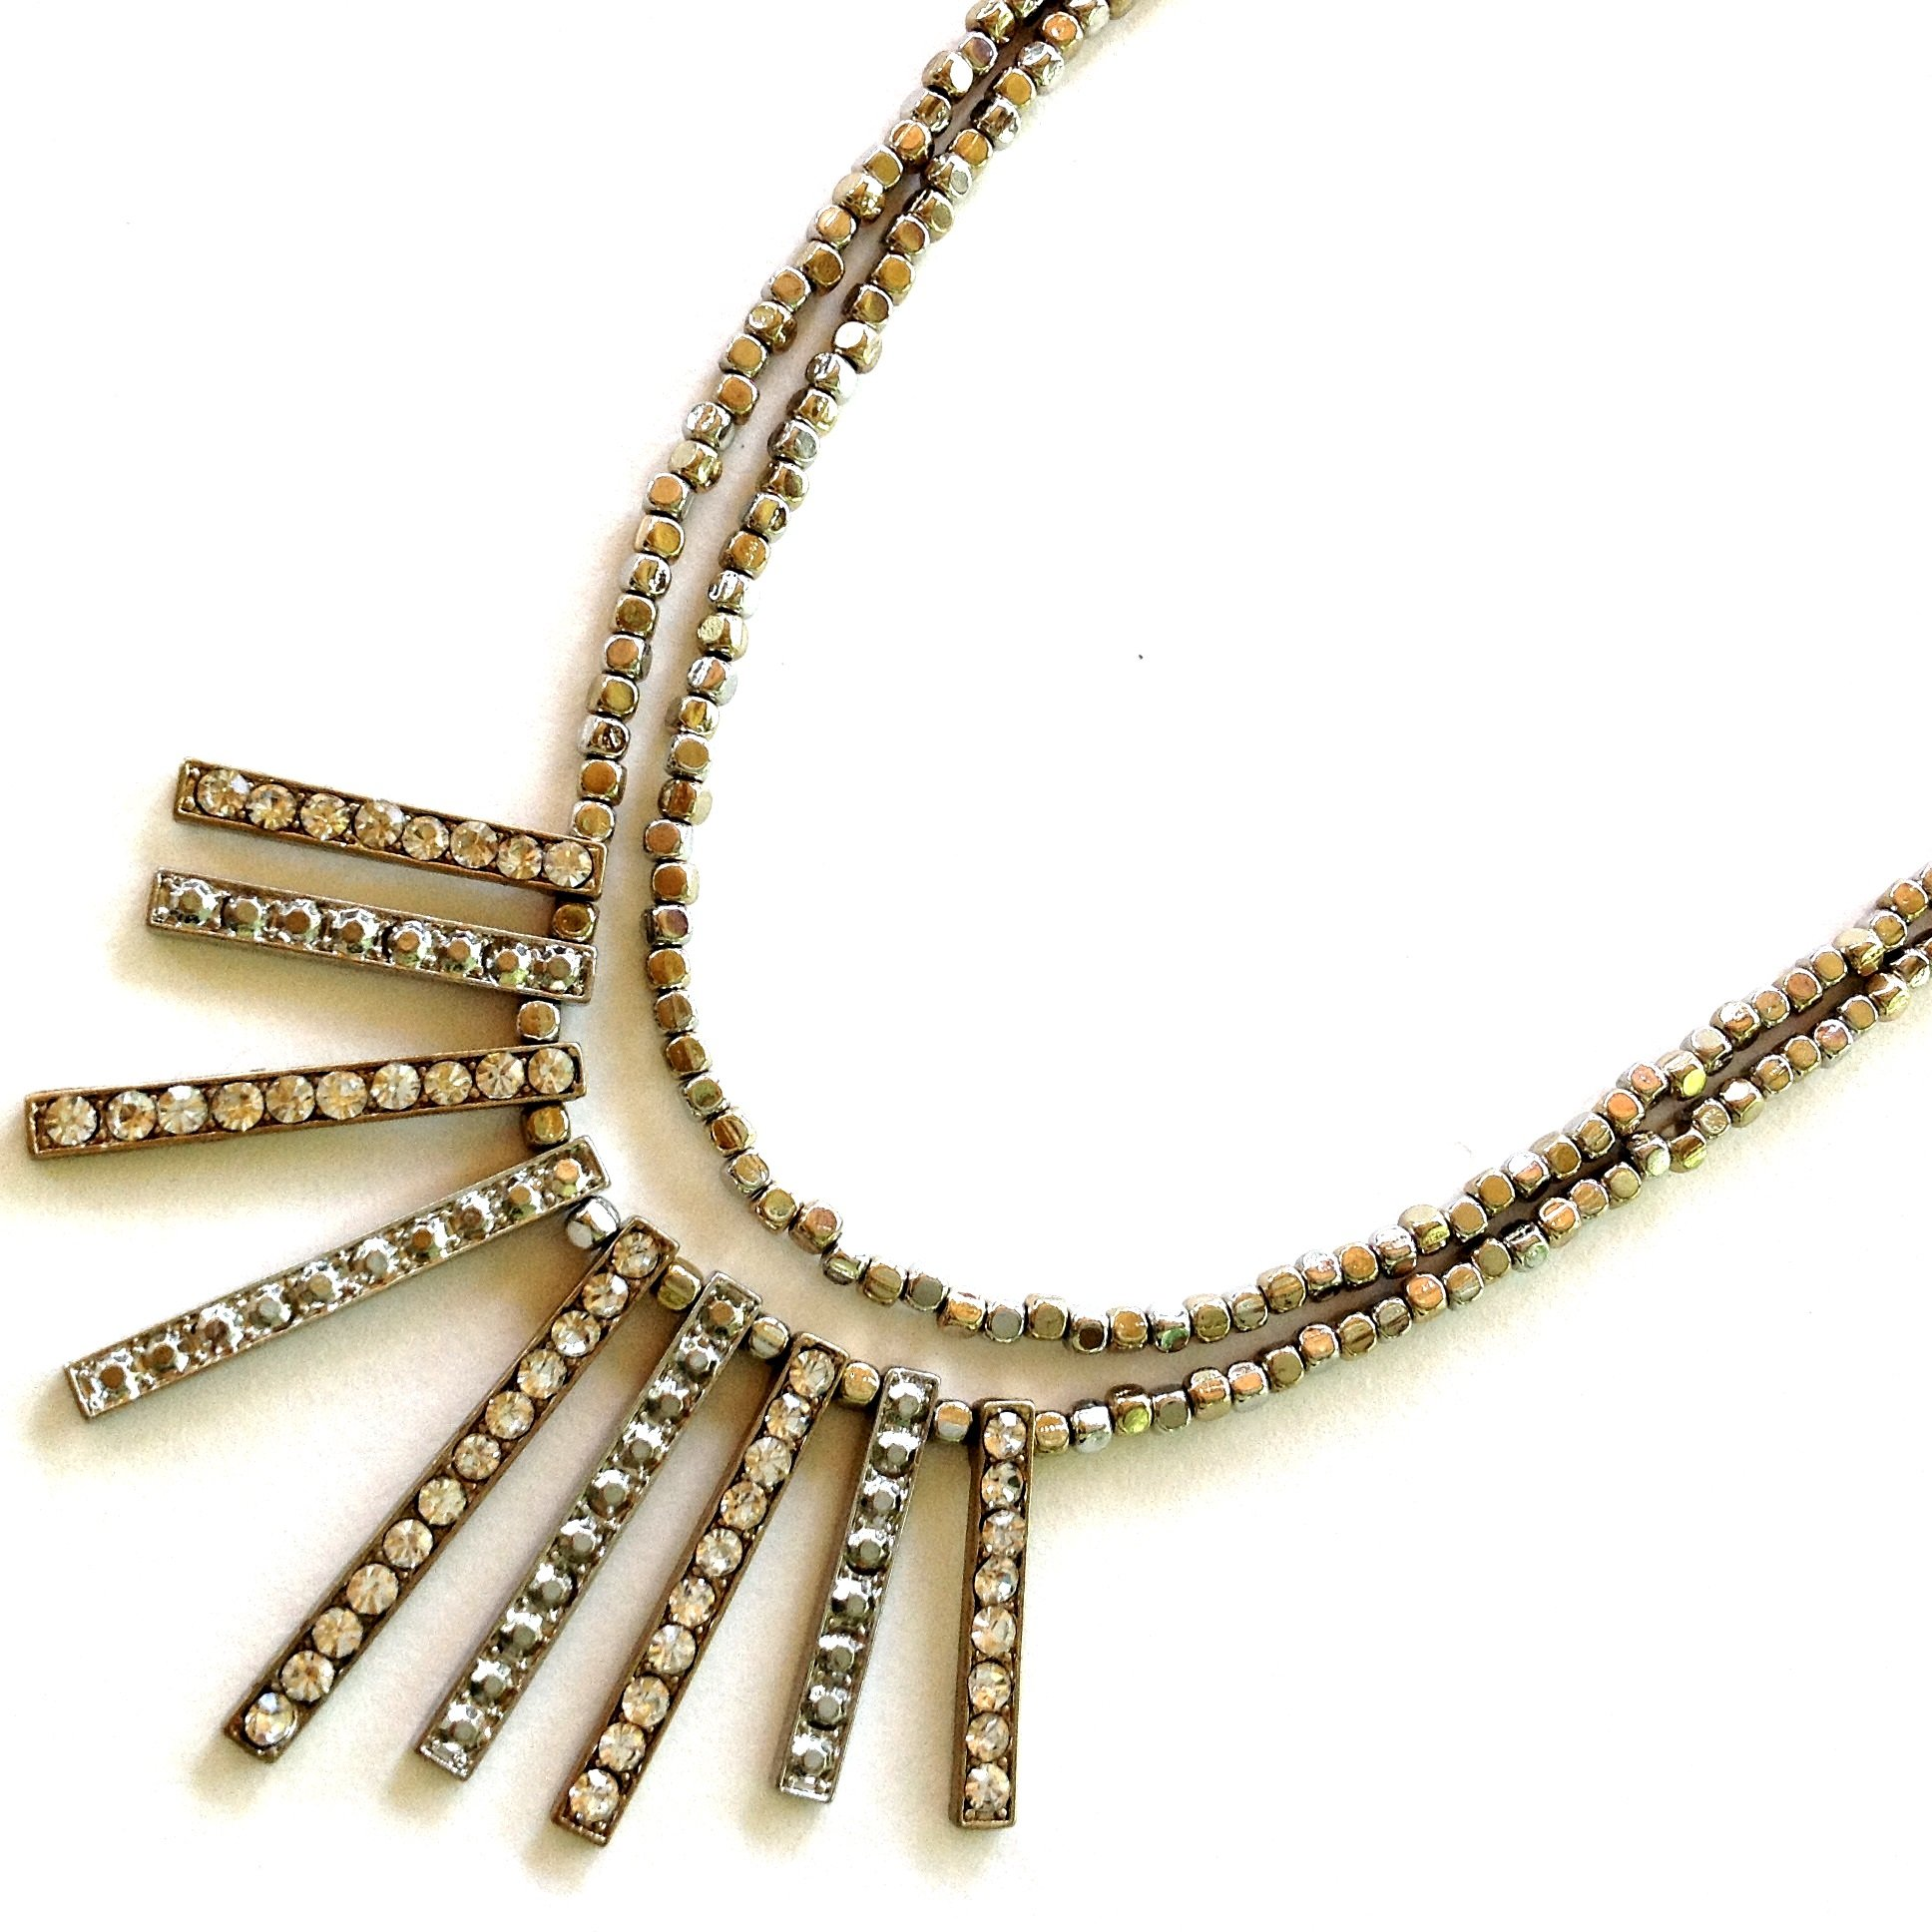 Statement Gold Silver Design Spike Fringe Crystal Square Beaded Women's Fashion Necklace